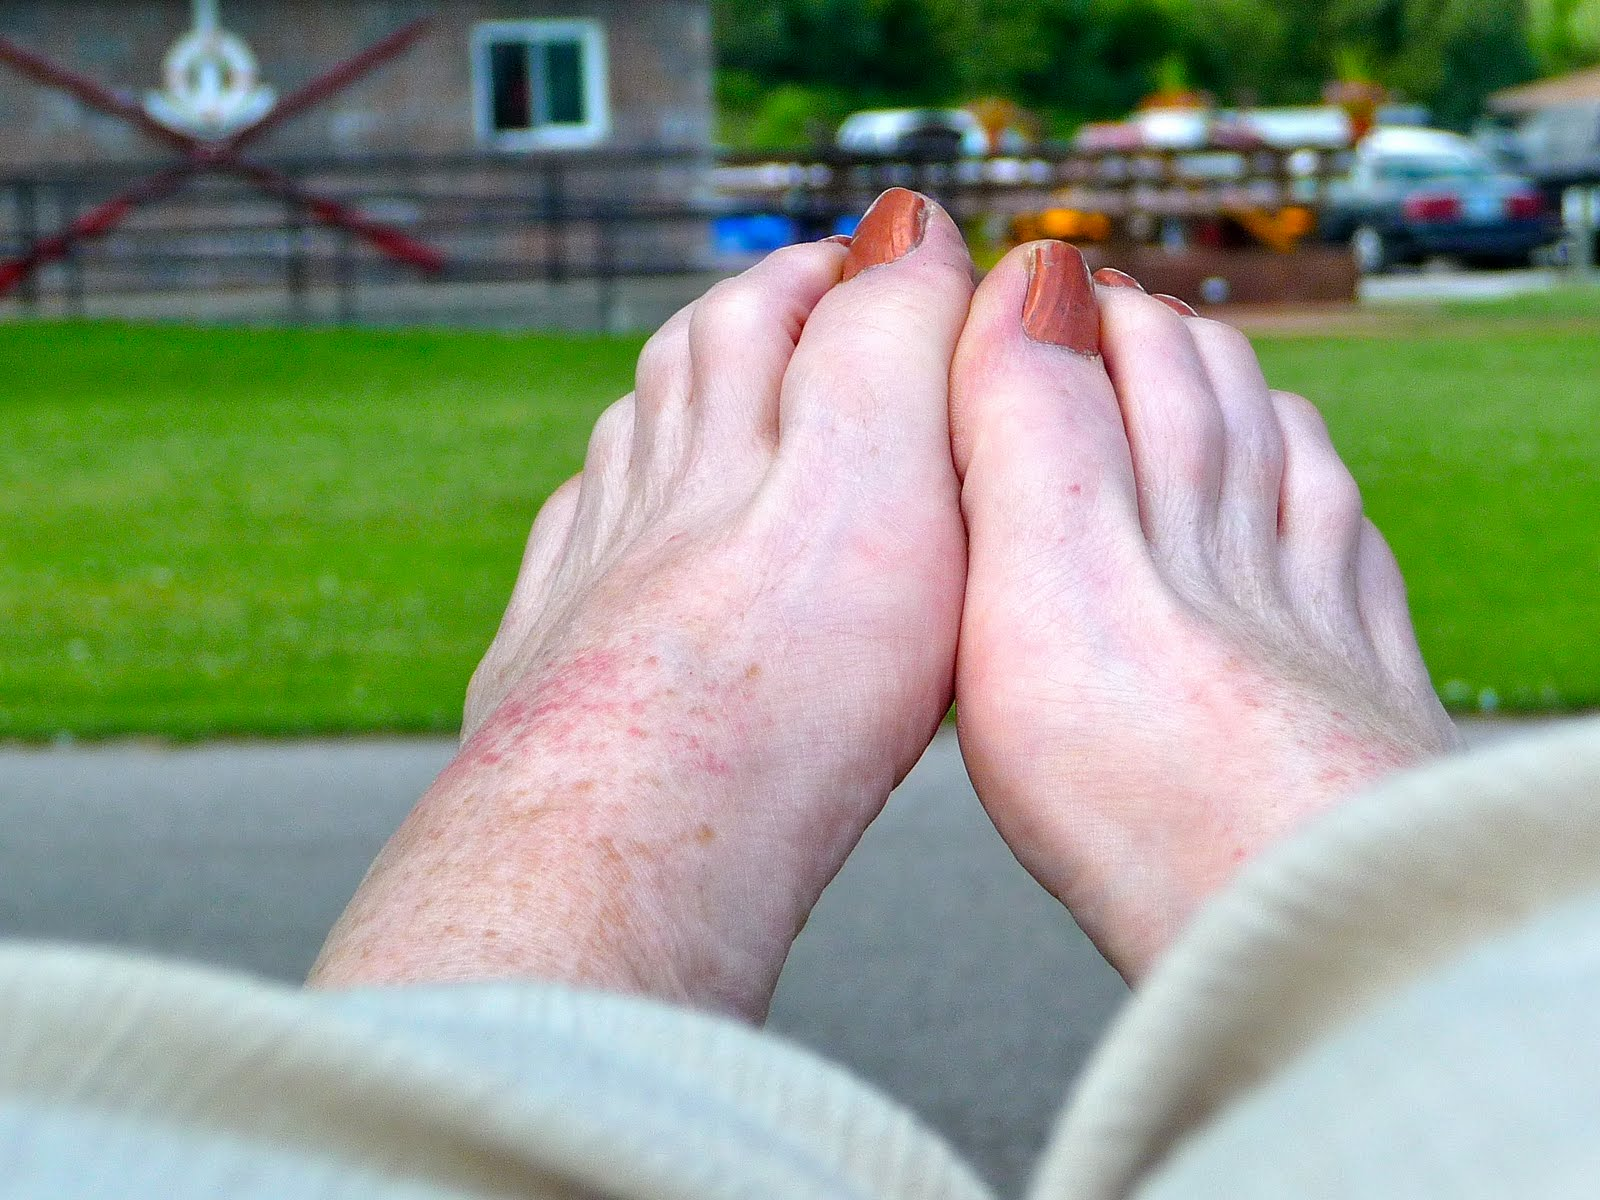 heat rash on foot pictures #10